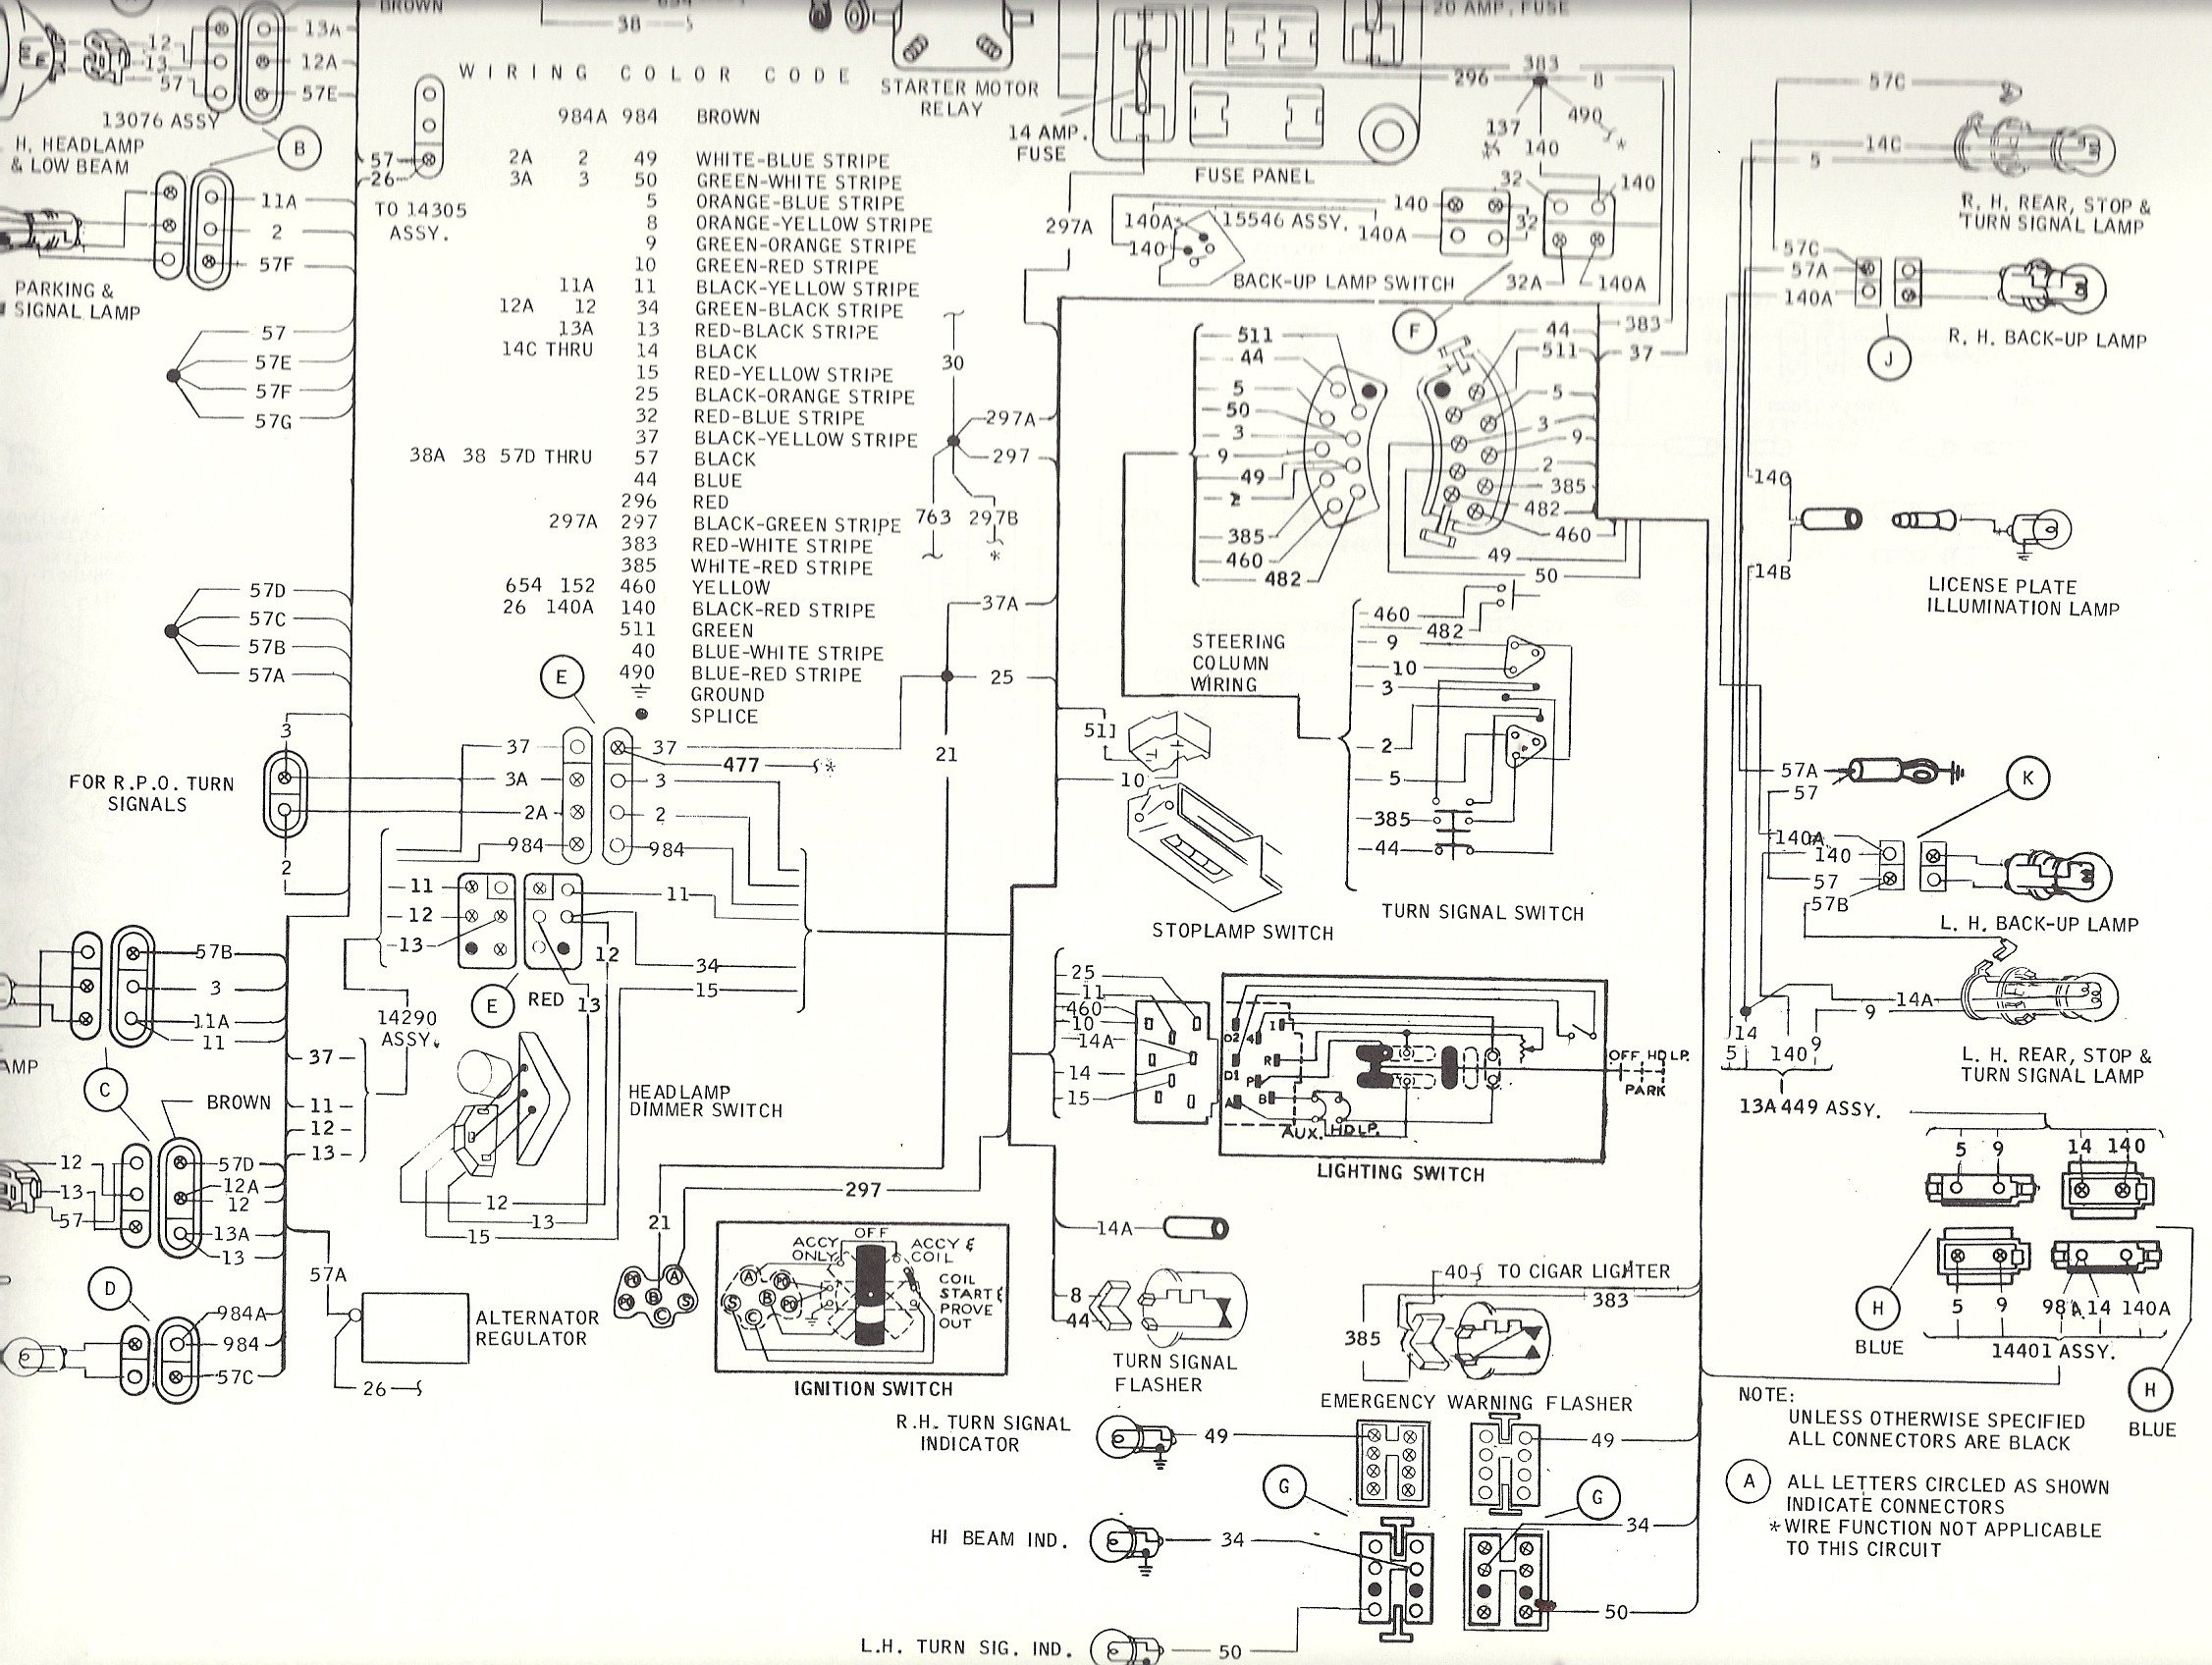 67 Camaro Radio Wiring Diagram Wire Data Schema Harness Schematic For Dash Mystery 1968 Vintage Mustang Forums